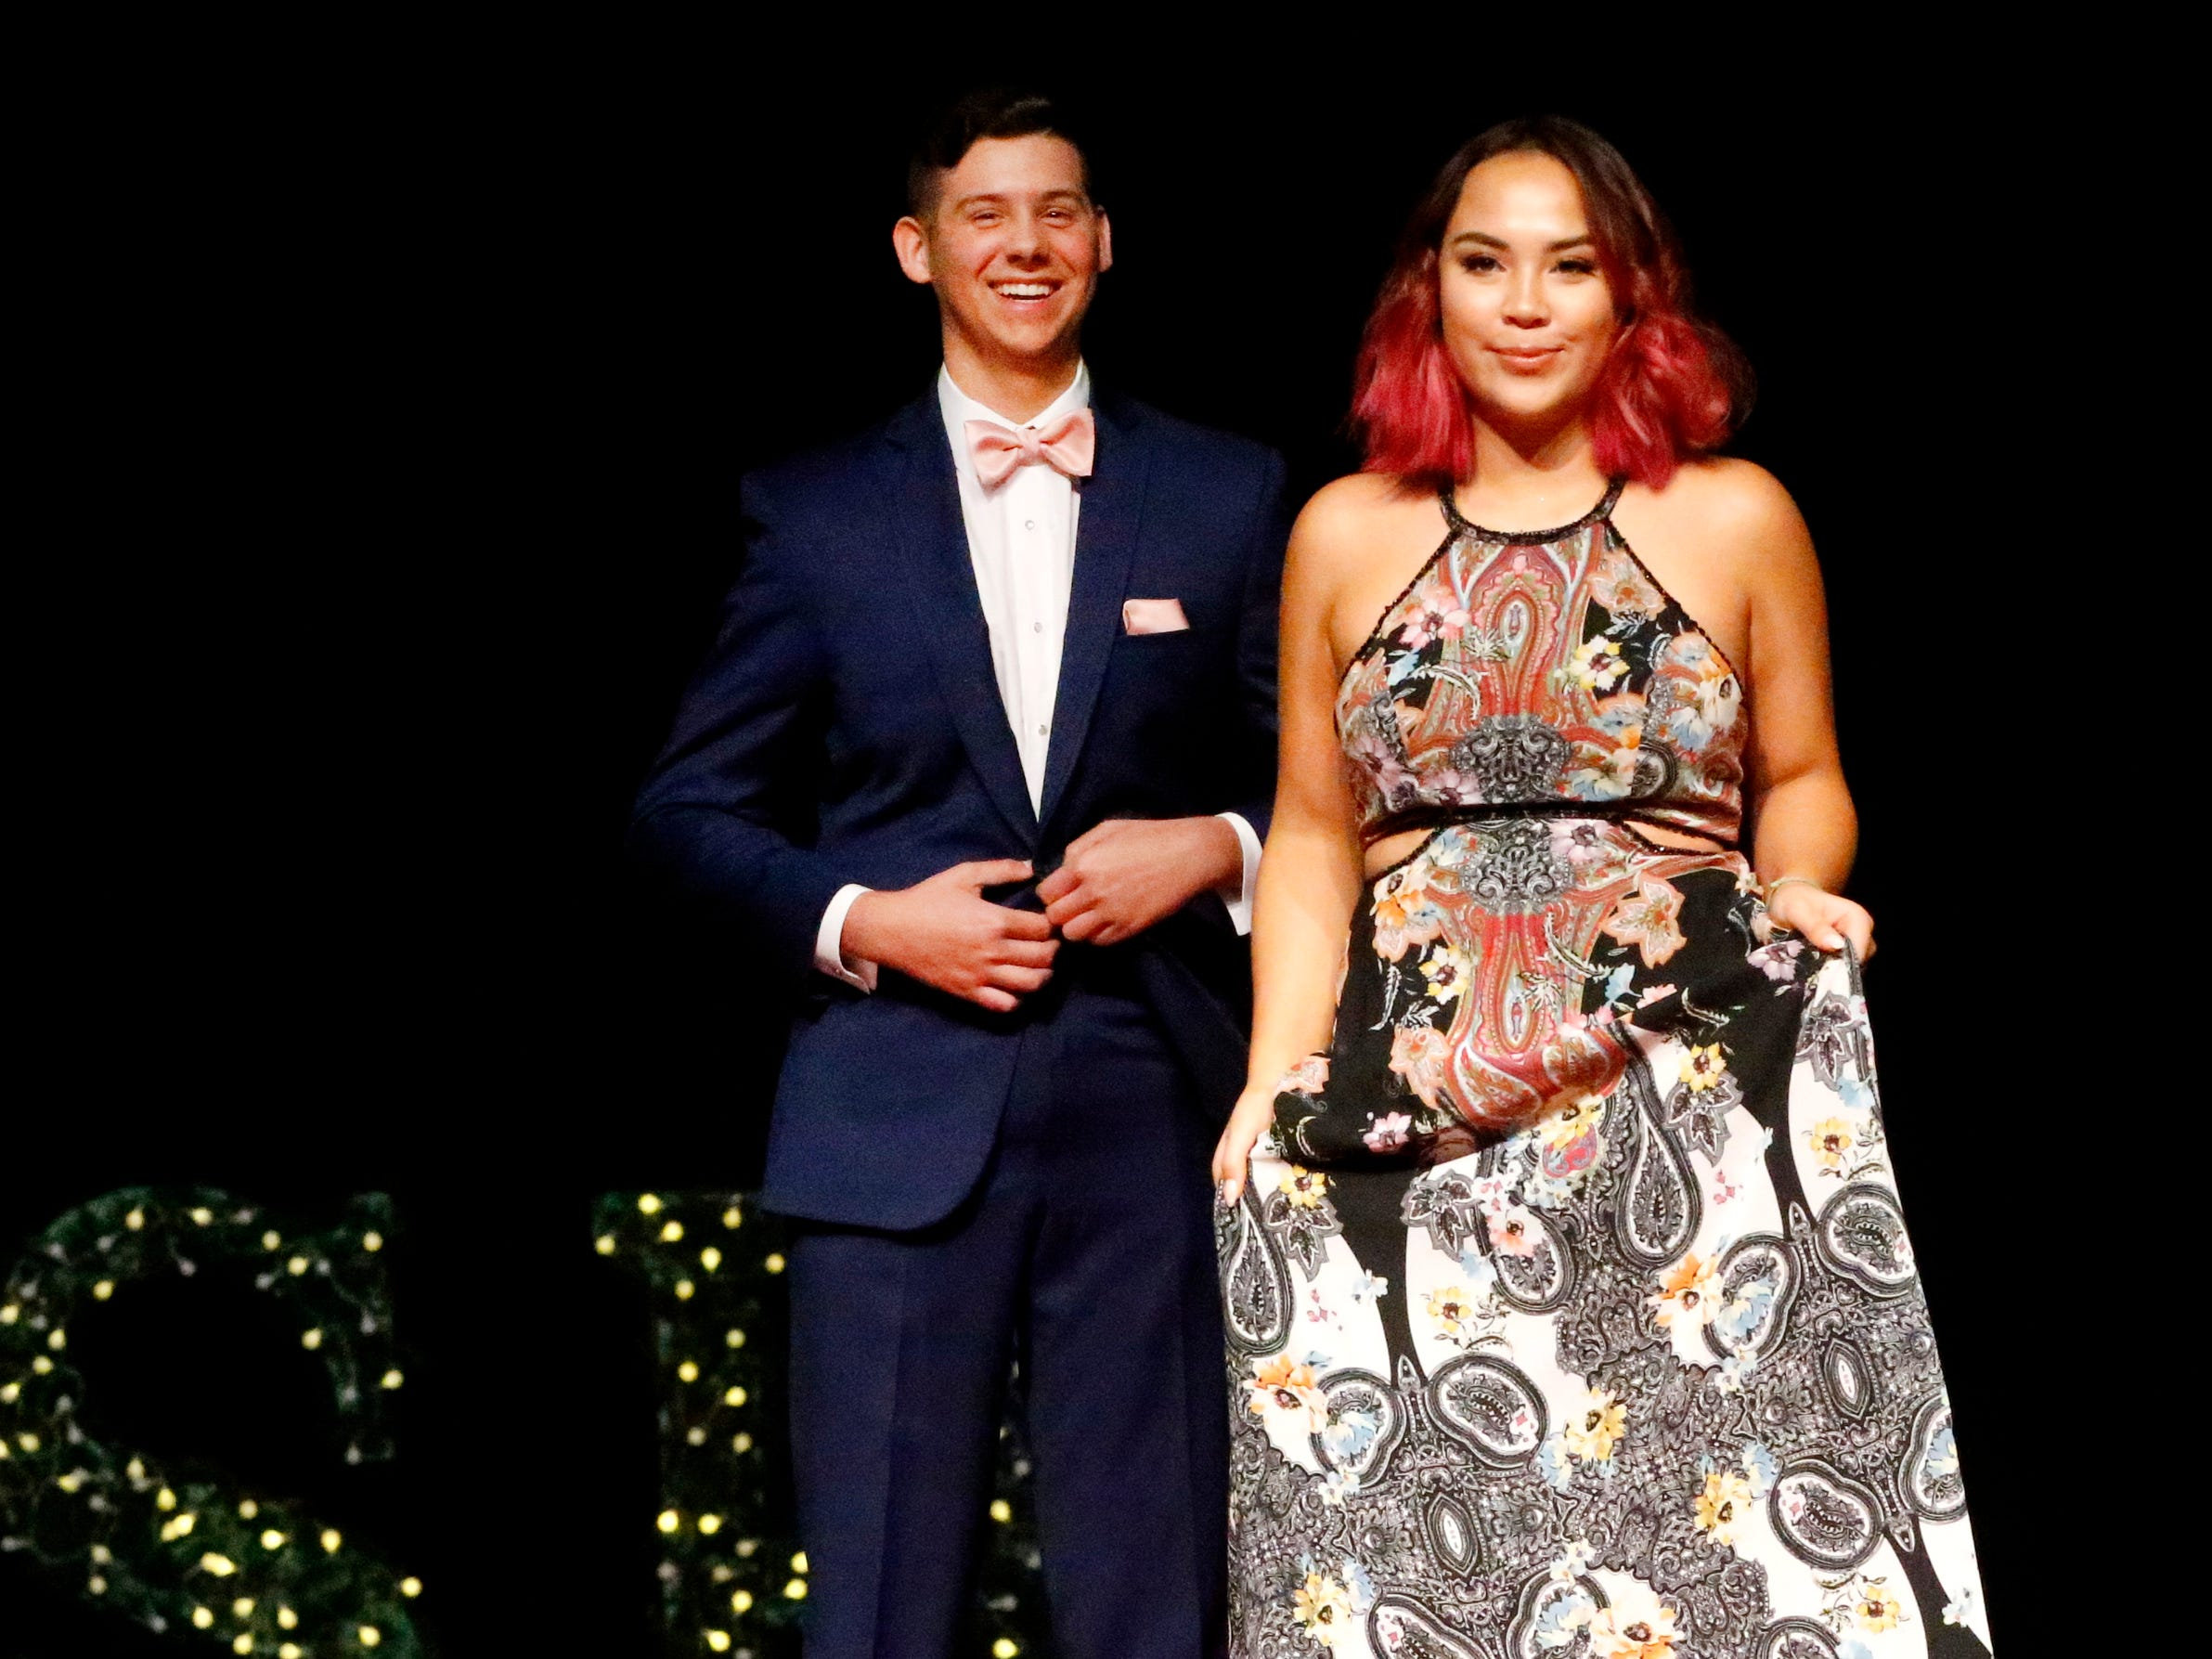 Jeffery Young, left and Zoe Houghton, right show off the latest in prom fashions during the Siegel Prom Fashion show on Thursday, Feb. 14, 2019.